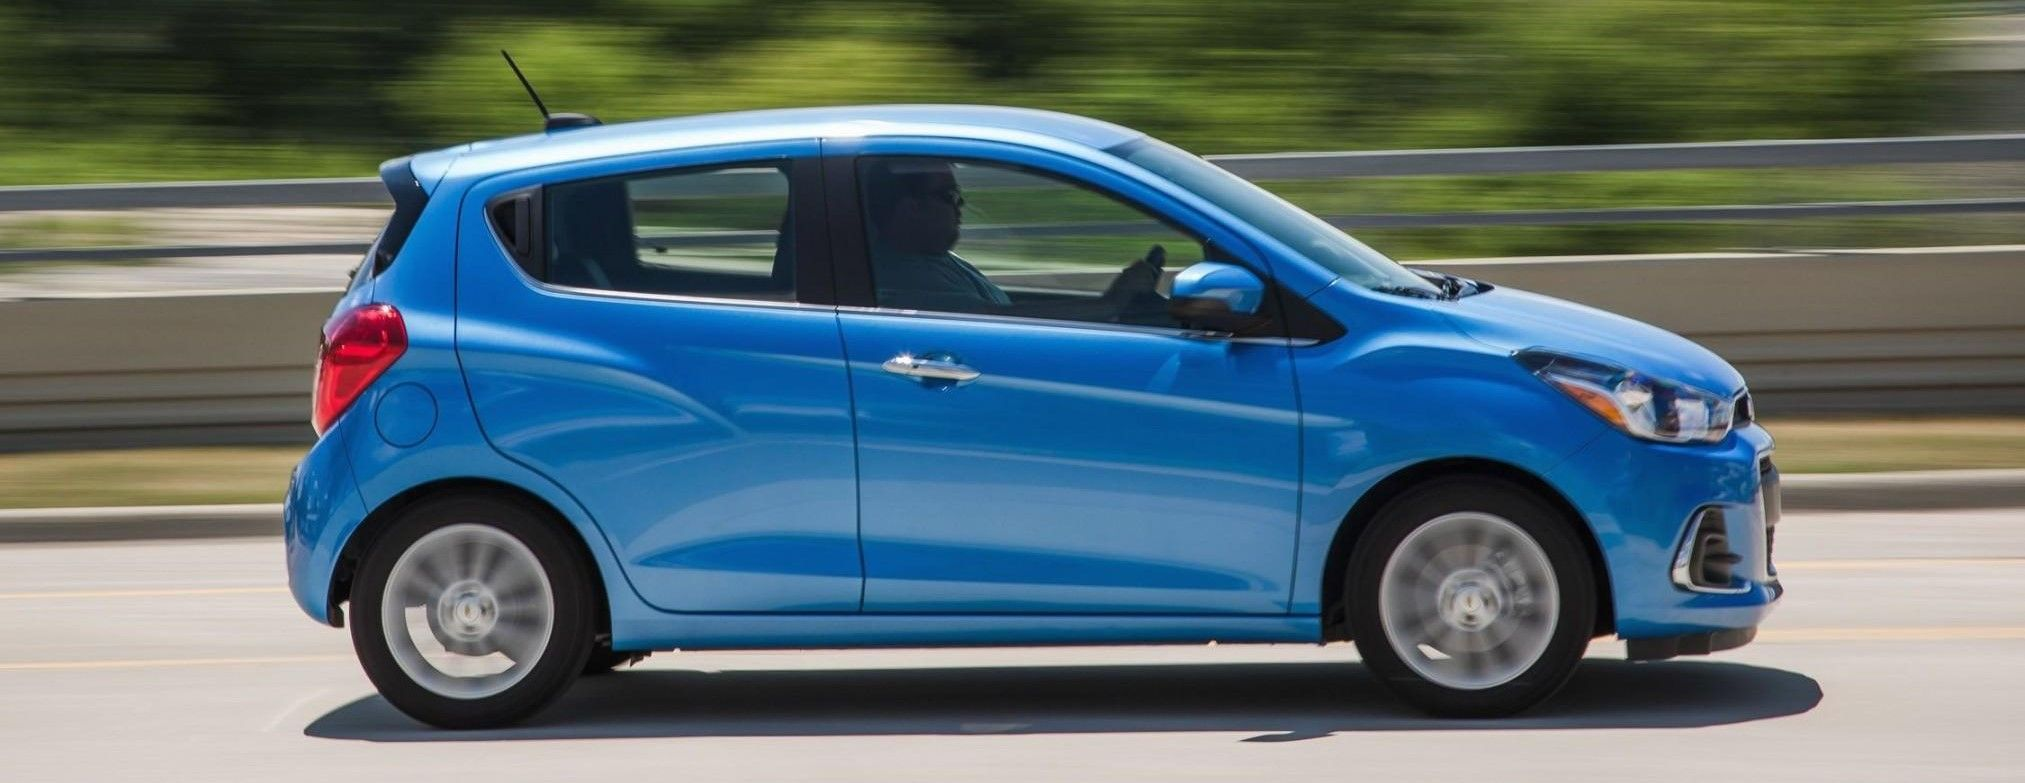 2019 Chevrolet Spark blue color side view acceleration